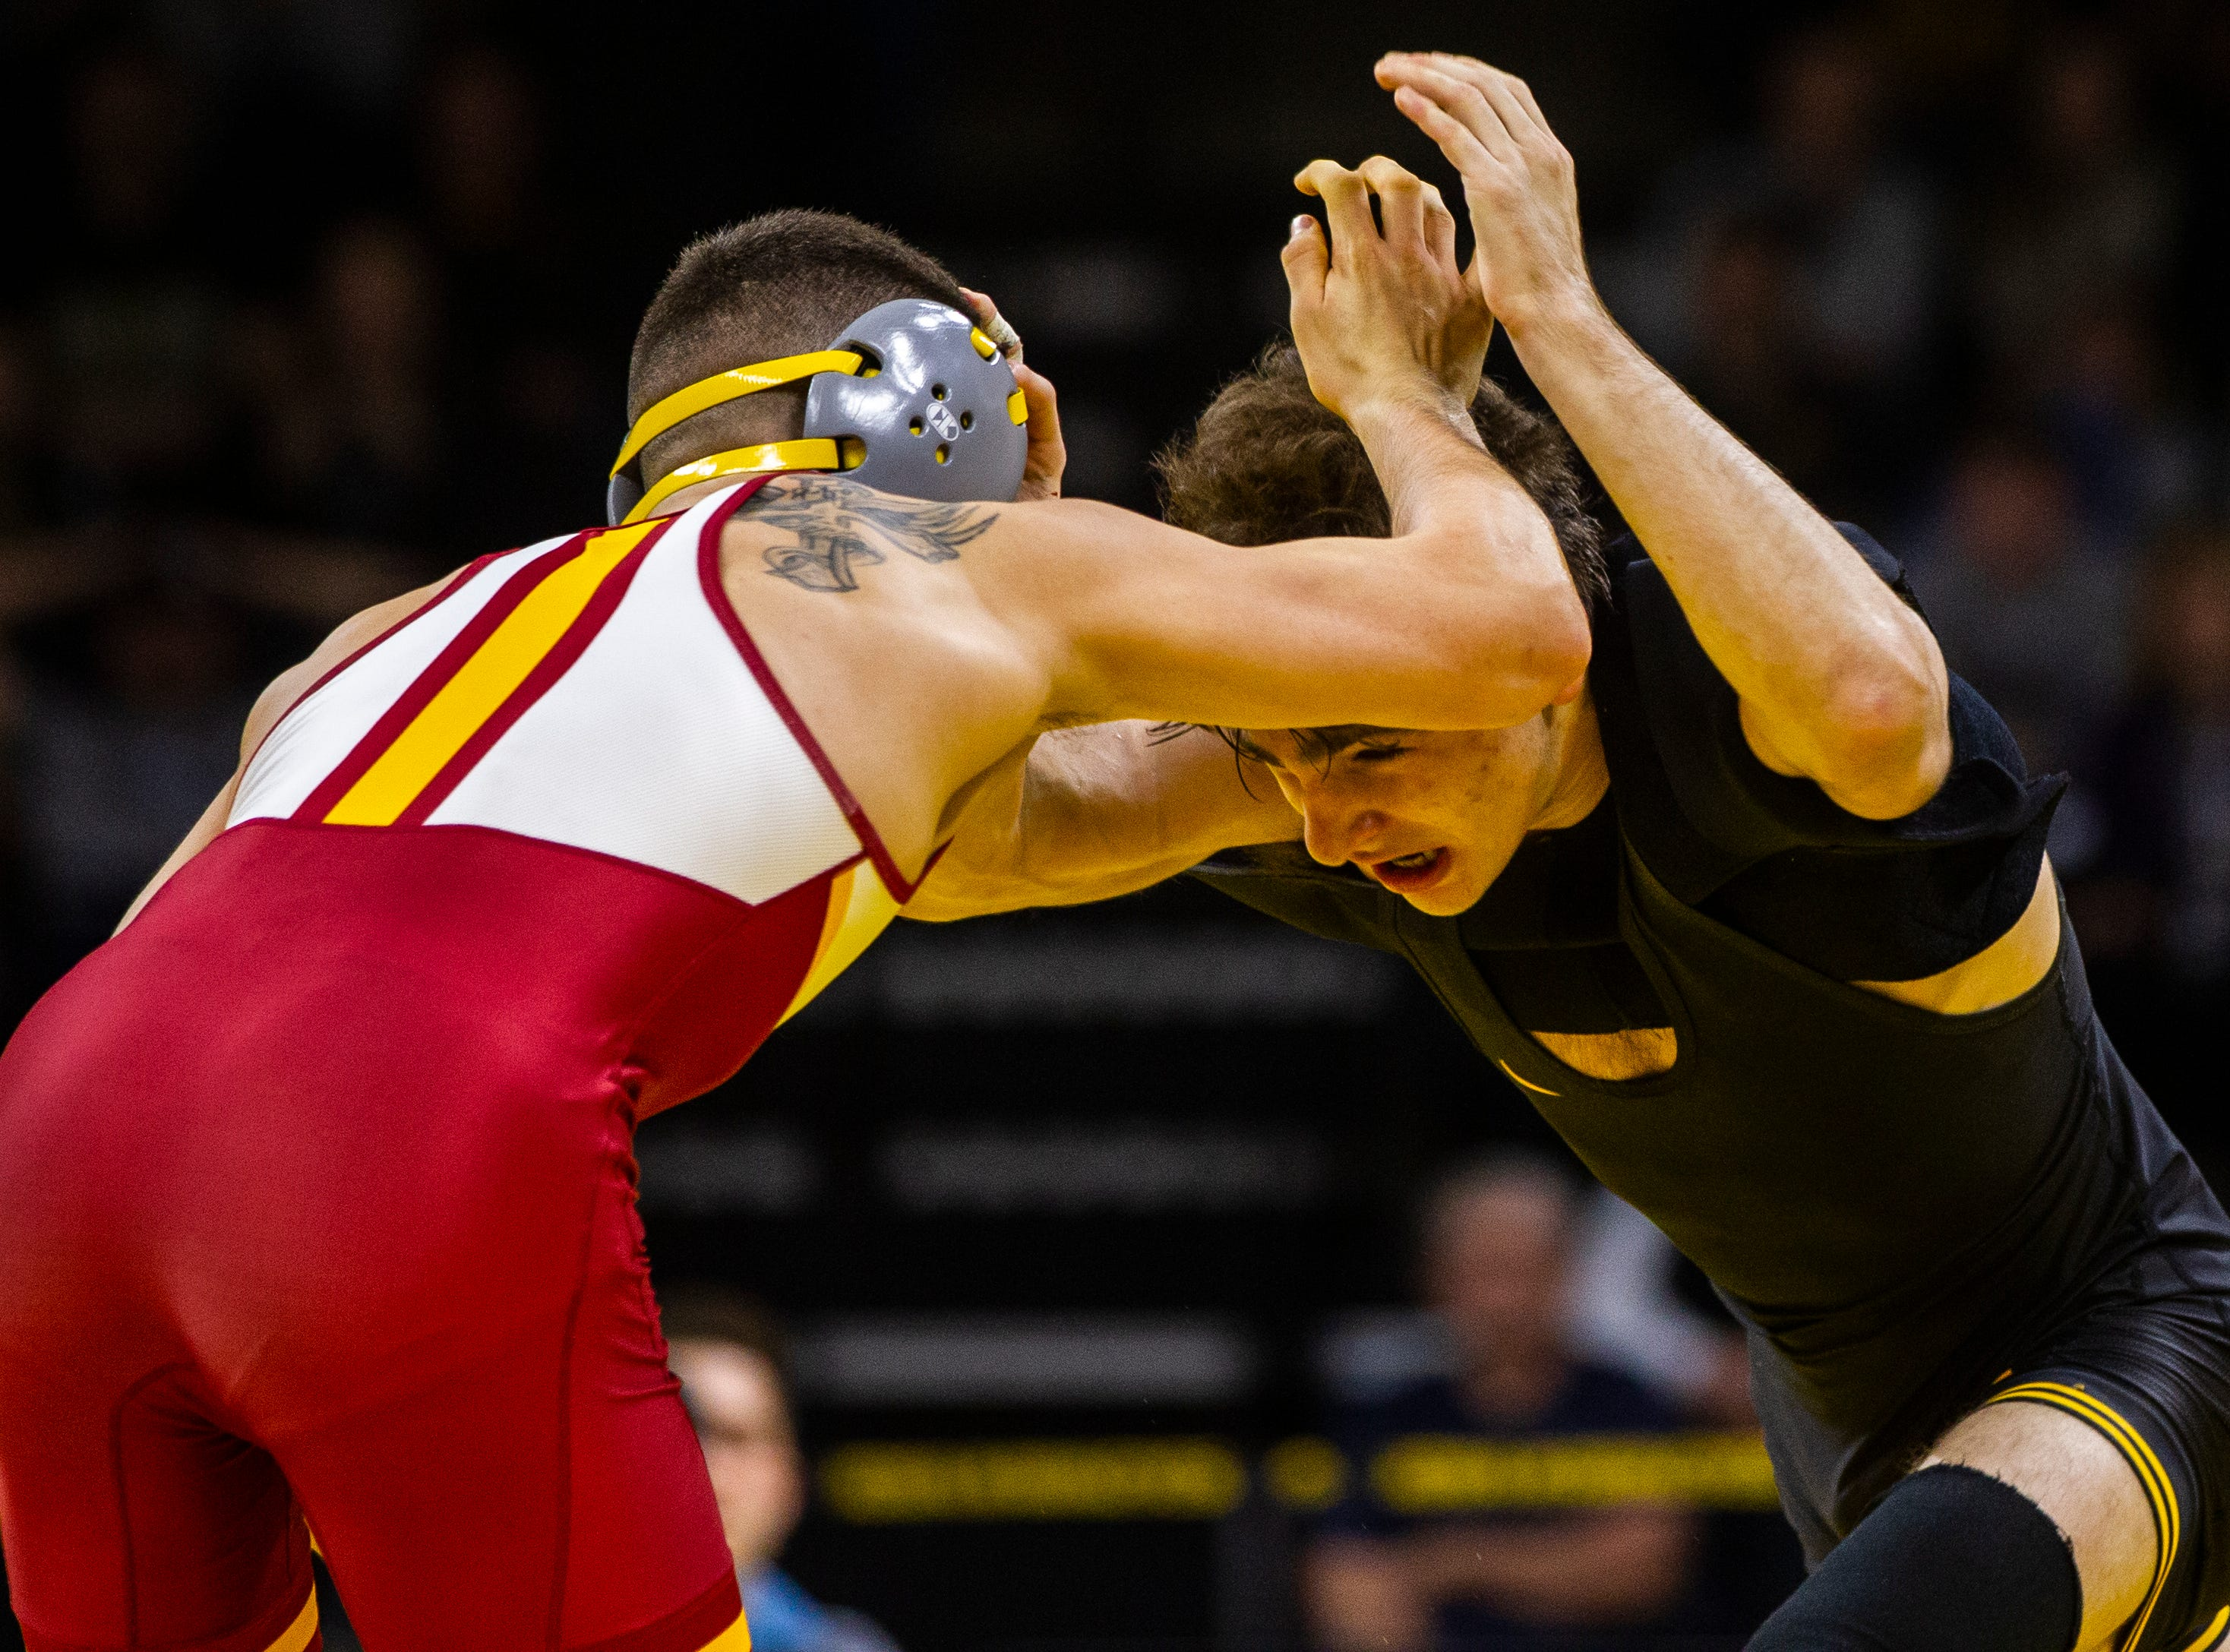 Iowa's Austin DeSanto, right, wrestles Iowa State's Austin Gomez at 133 during a NCAA Cy-Hawk series wrestling dual on Saturday, Dec. 1, 2018, at Carver-Hawkeye Arena in Iowa City.